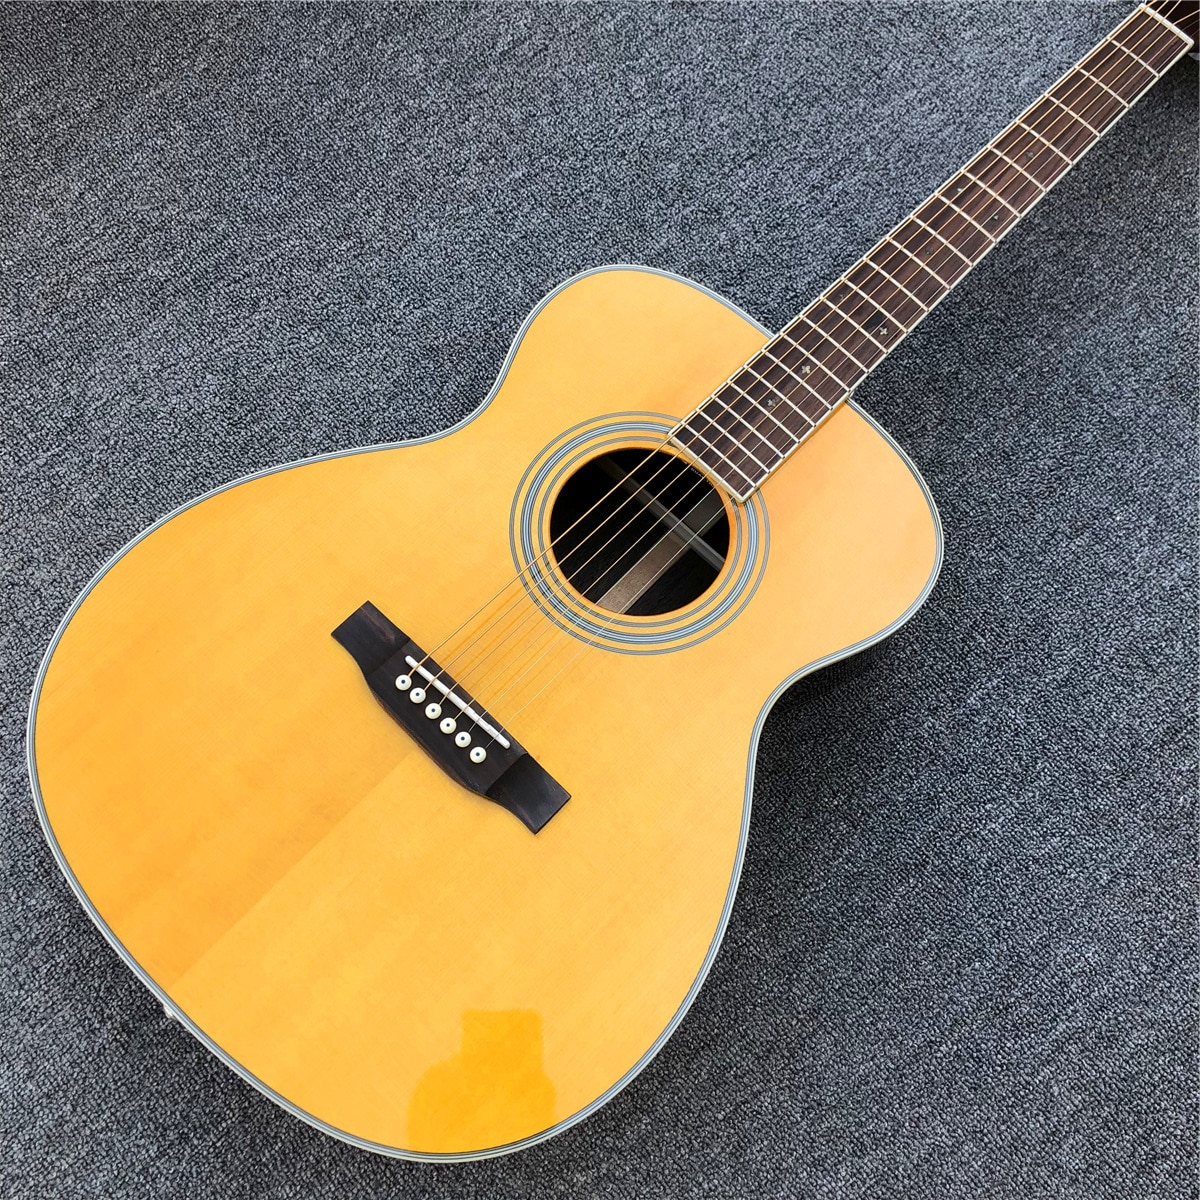 40 Inches Yellow Solid Spruce Top OM Style Acoustic Guitar with Rosewood Body